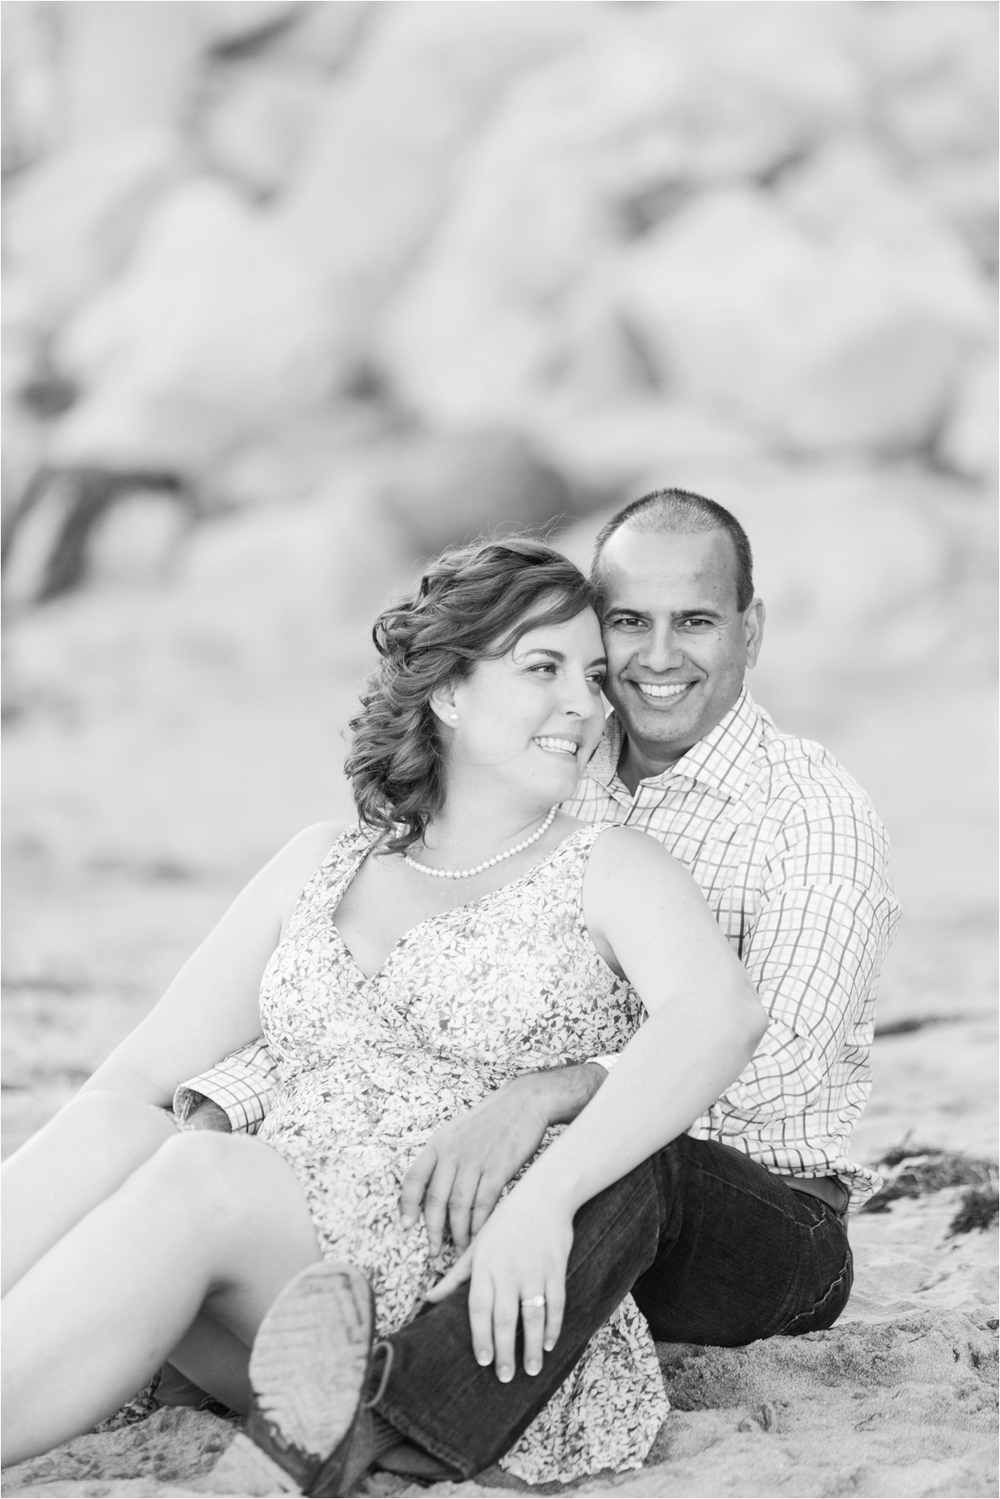 New Brighton beach engagement pictures by Briana Calderon Photography_0267.jpg